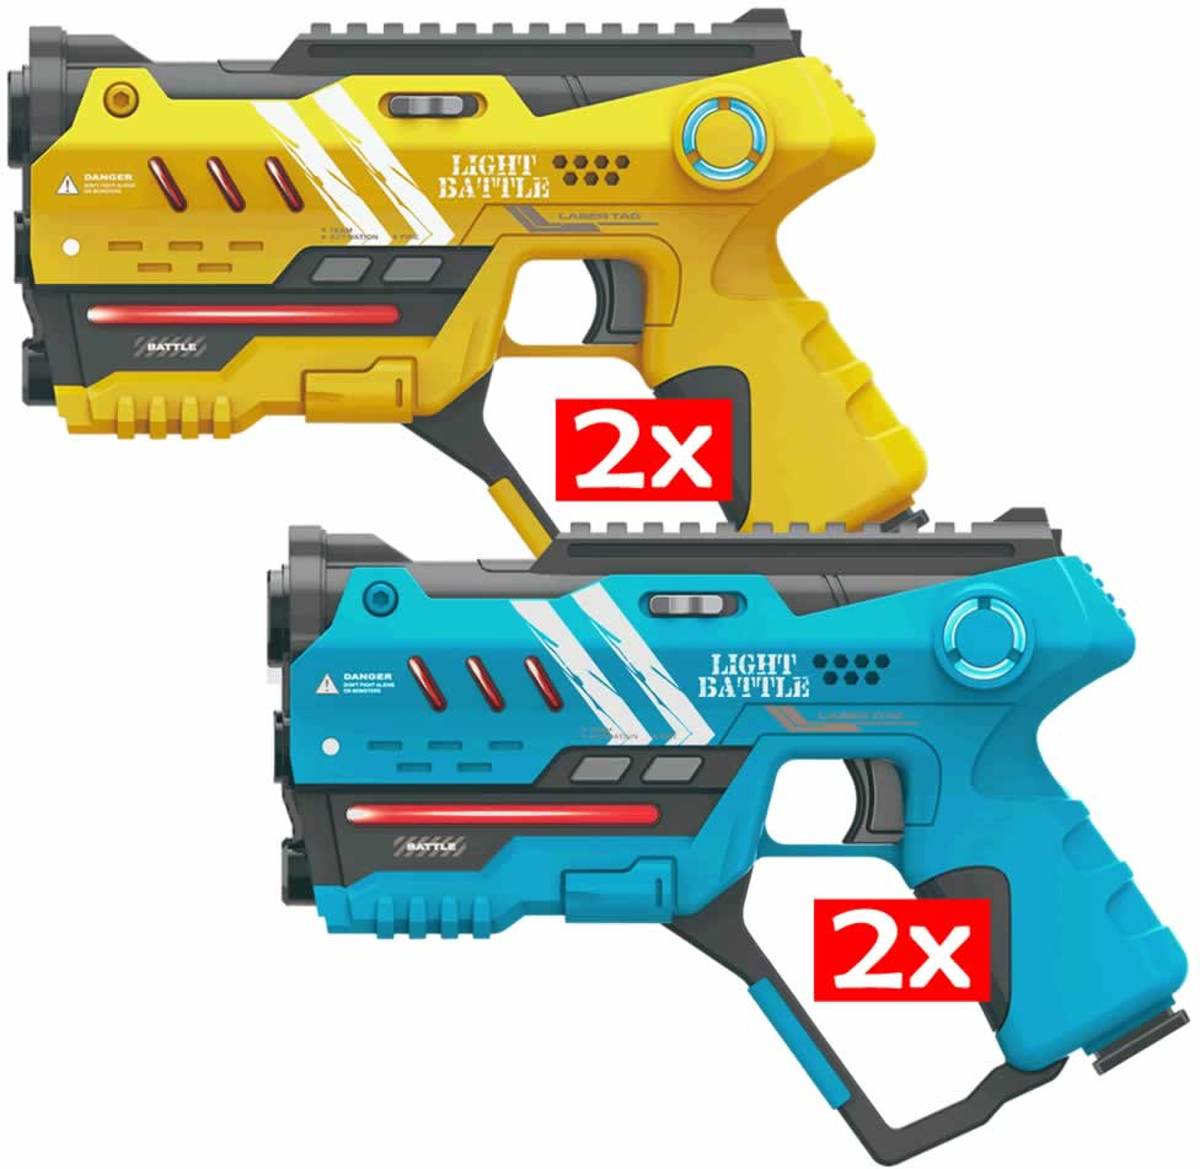 Anti-Cheat laserpistolen set - 2x geel en 2x blauw